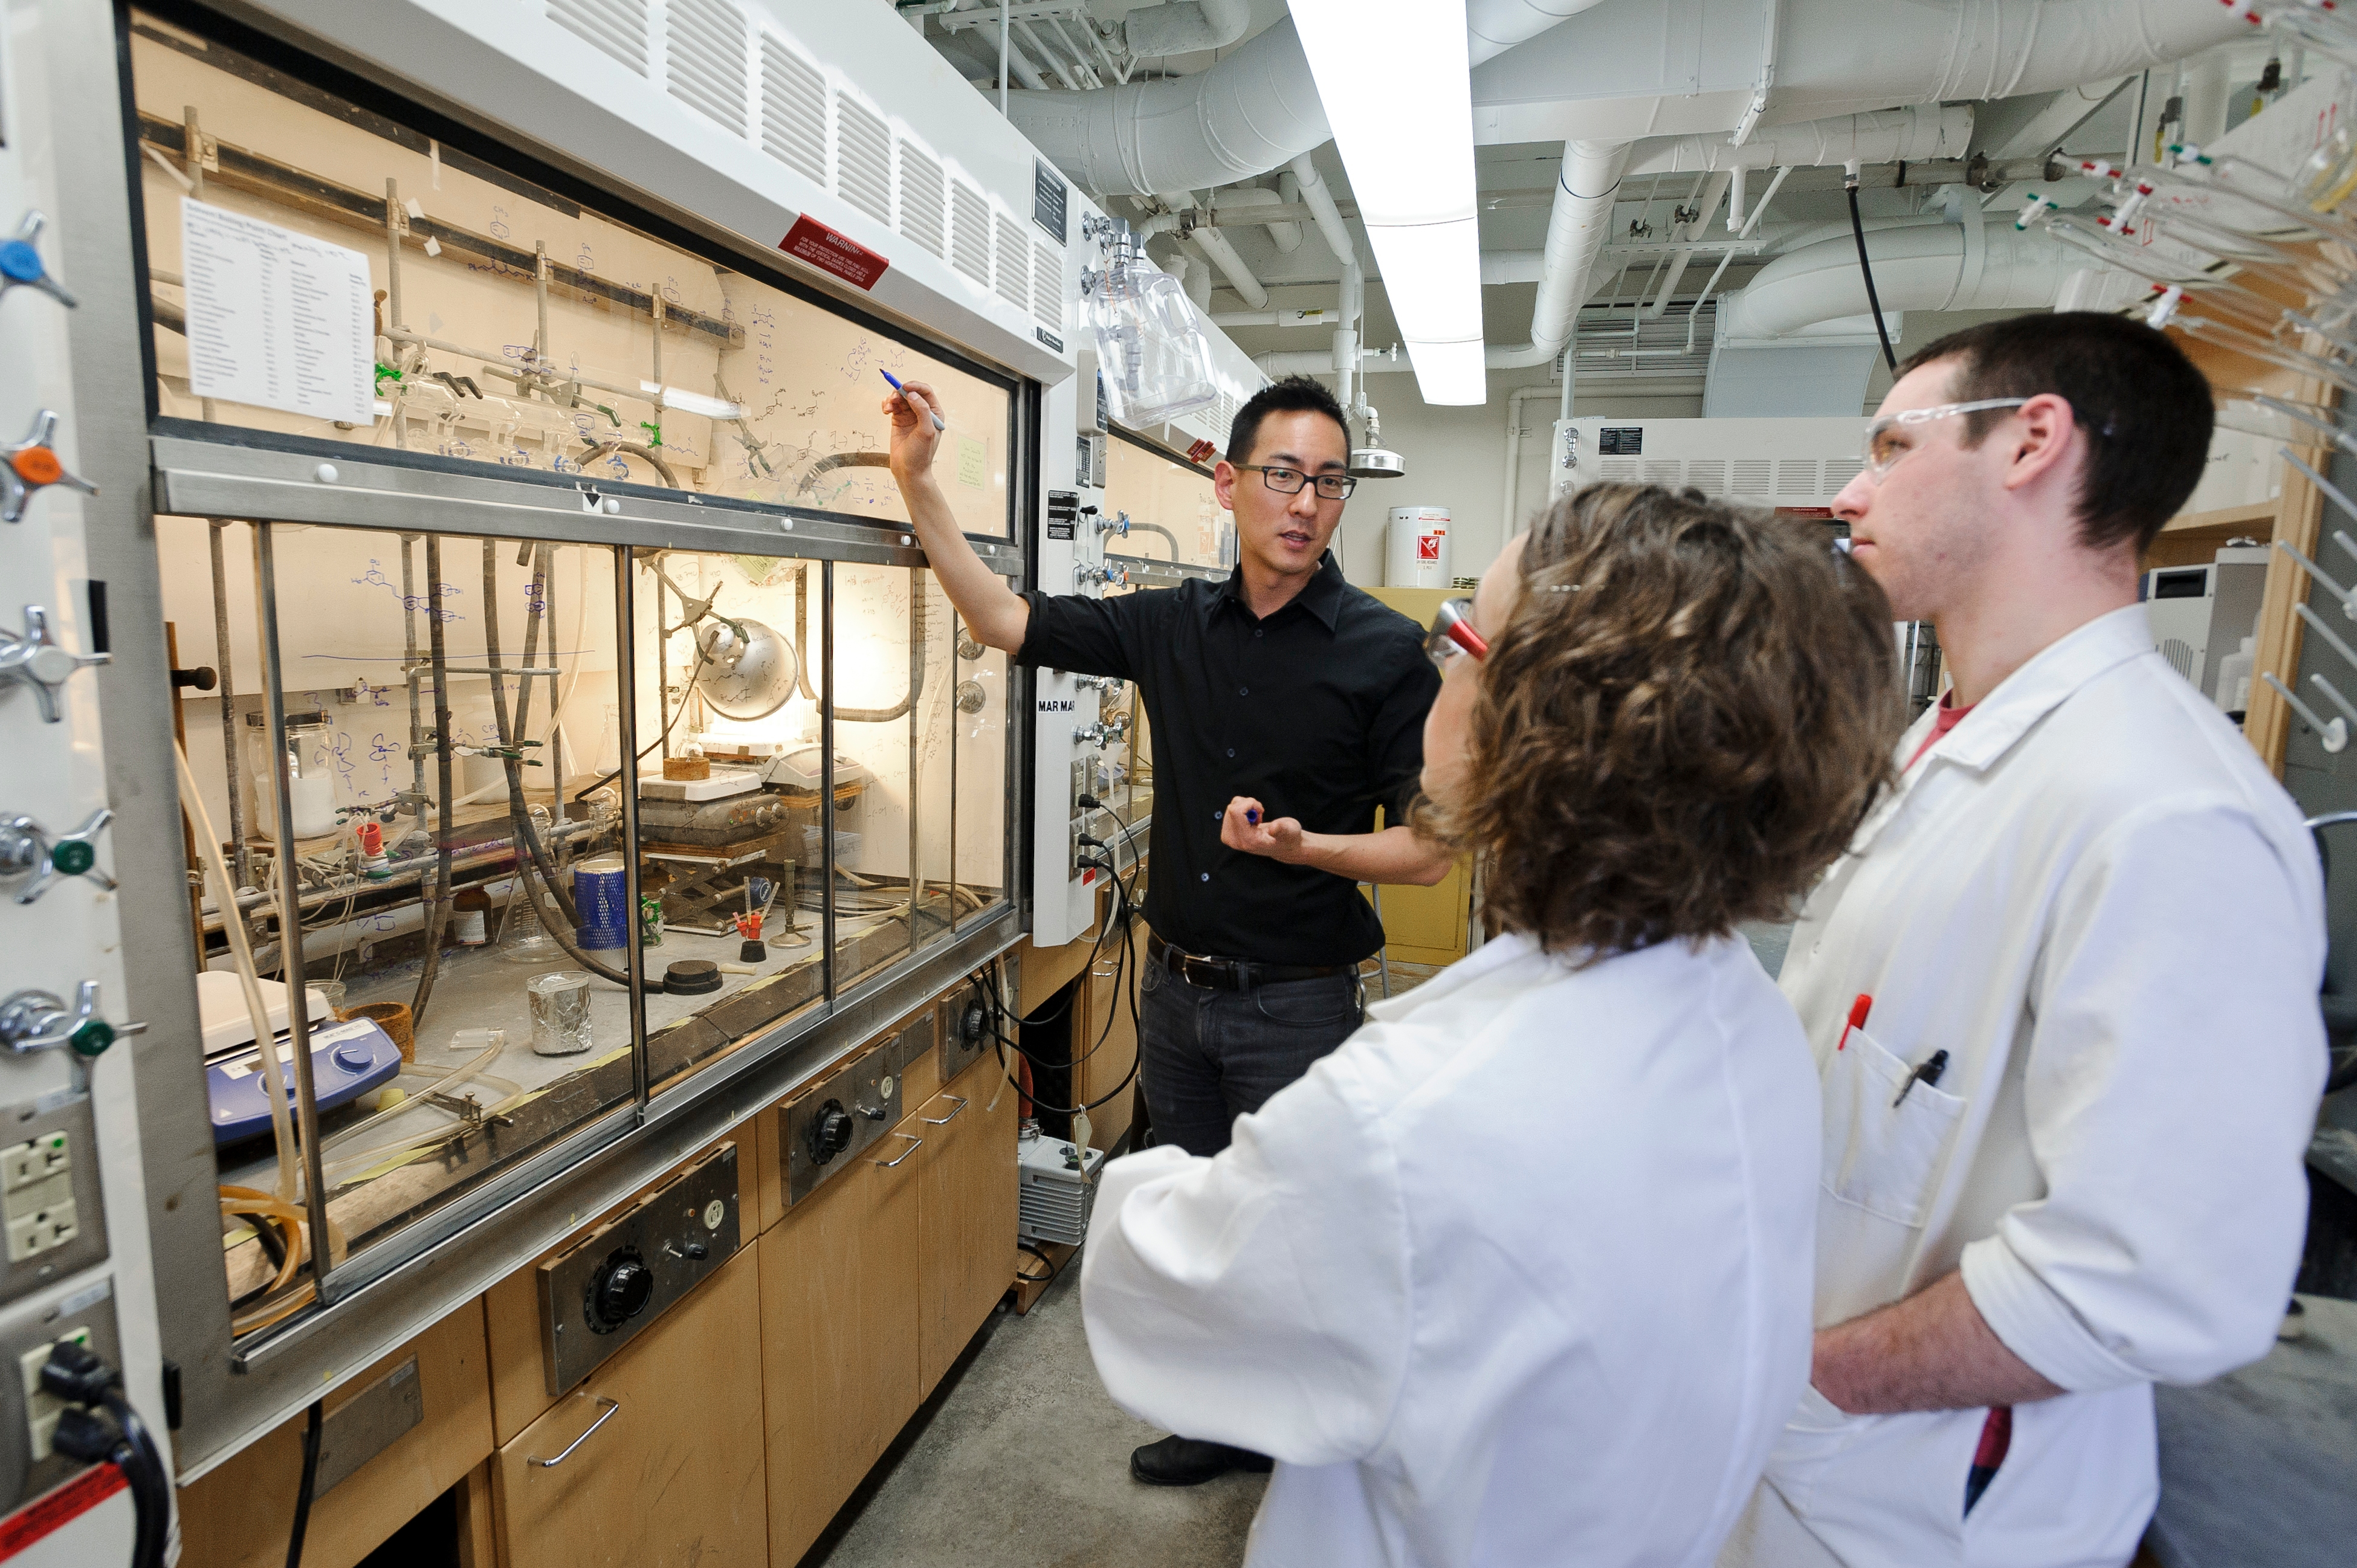 Prof. Yoon speaking with two students in the lab in front of a chemical fume hood